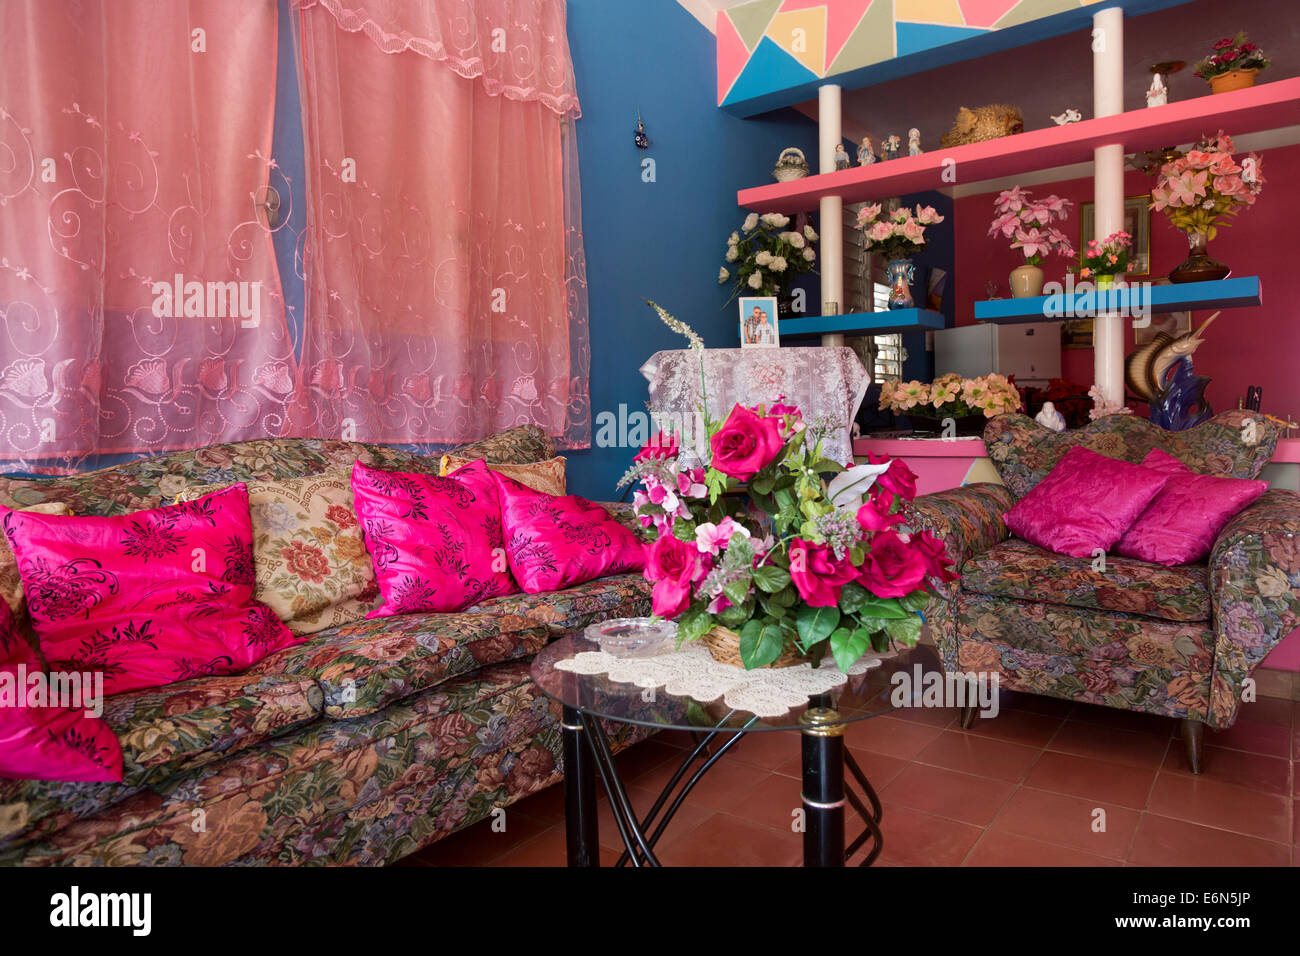 sitting room of traditional lower middle class Cuban home, Vinales, Western Cuba - Stock Image